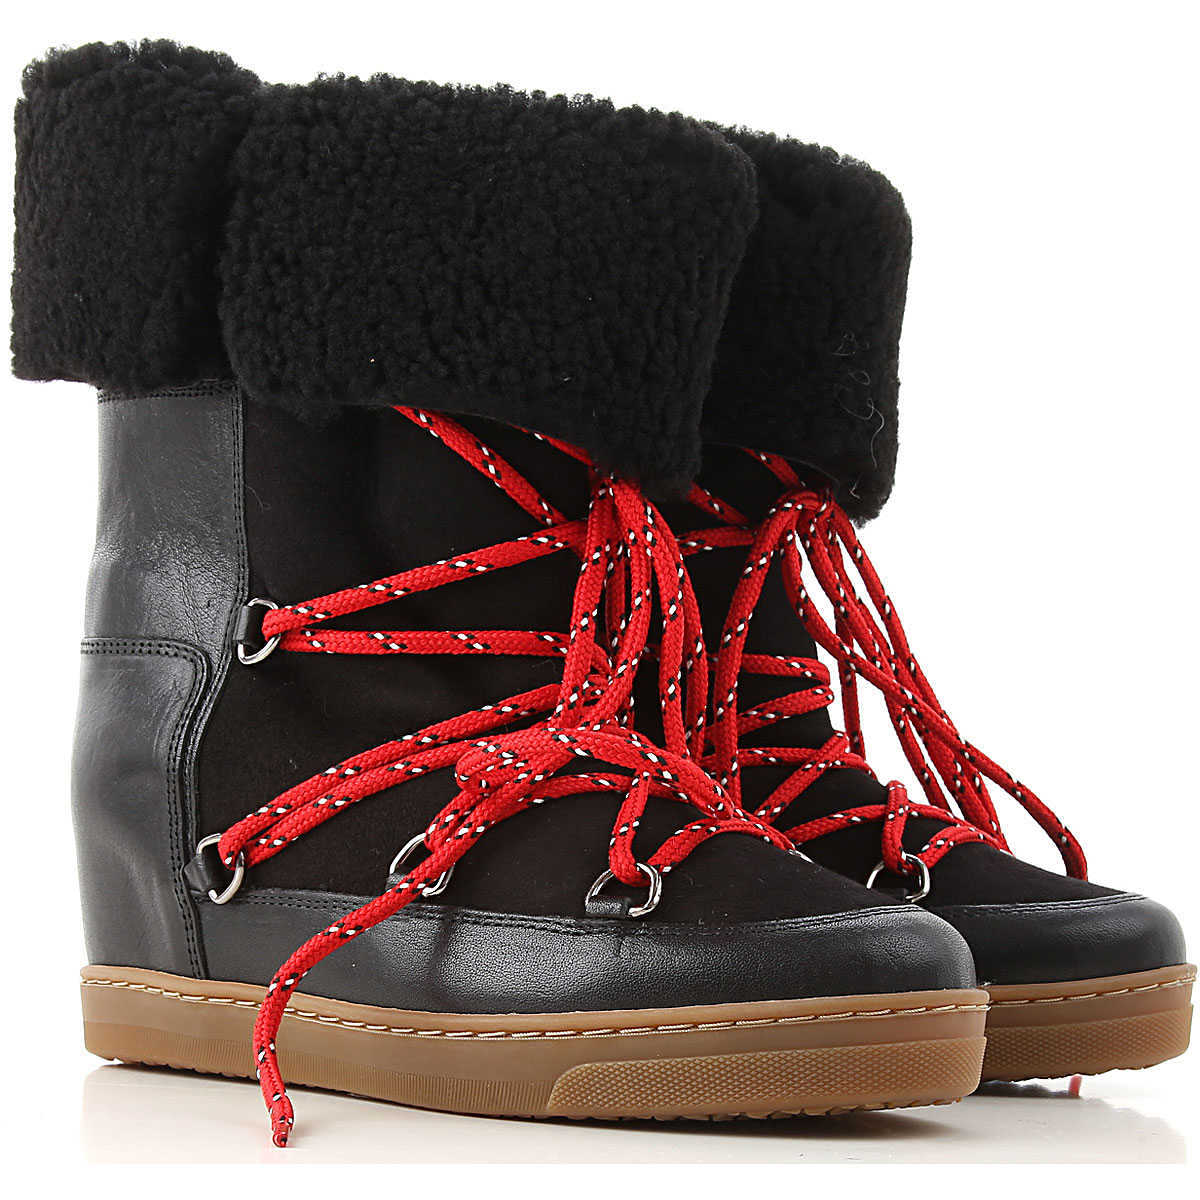 Isabel Marant Boots for Women Booties - GOOFASH